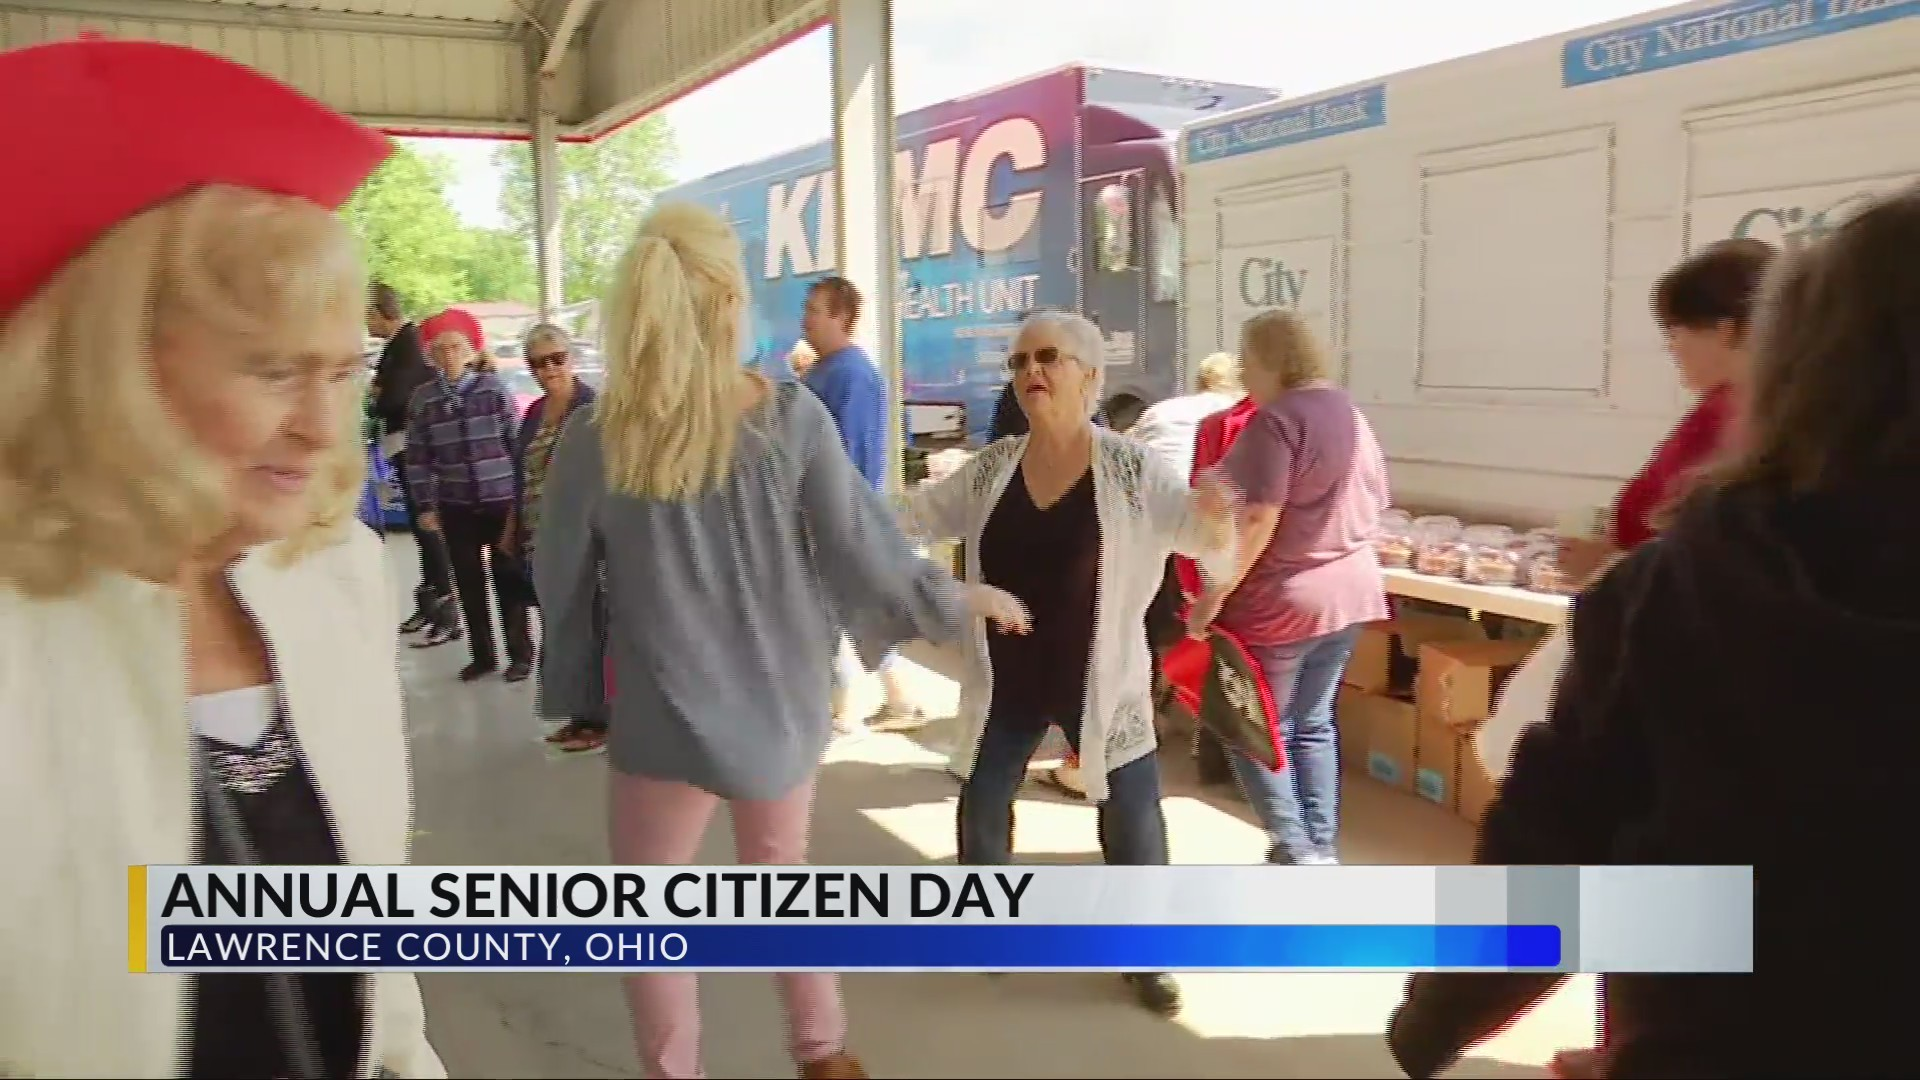 Lawrence County hosts Senior Day on county fairgrounds